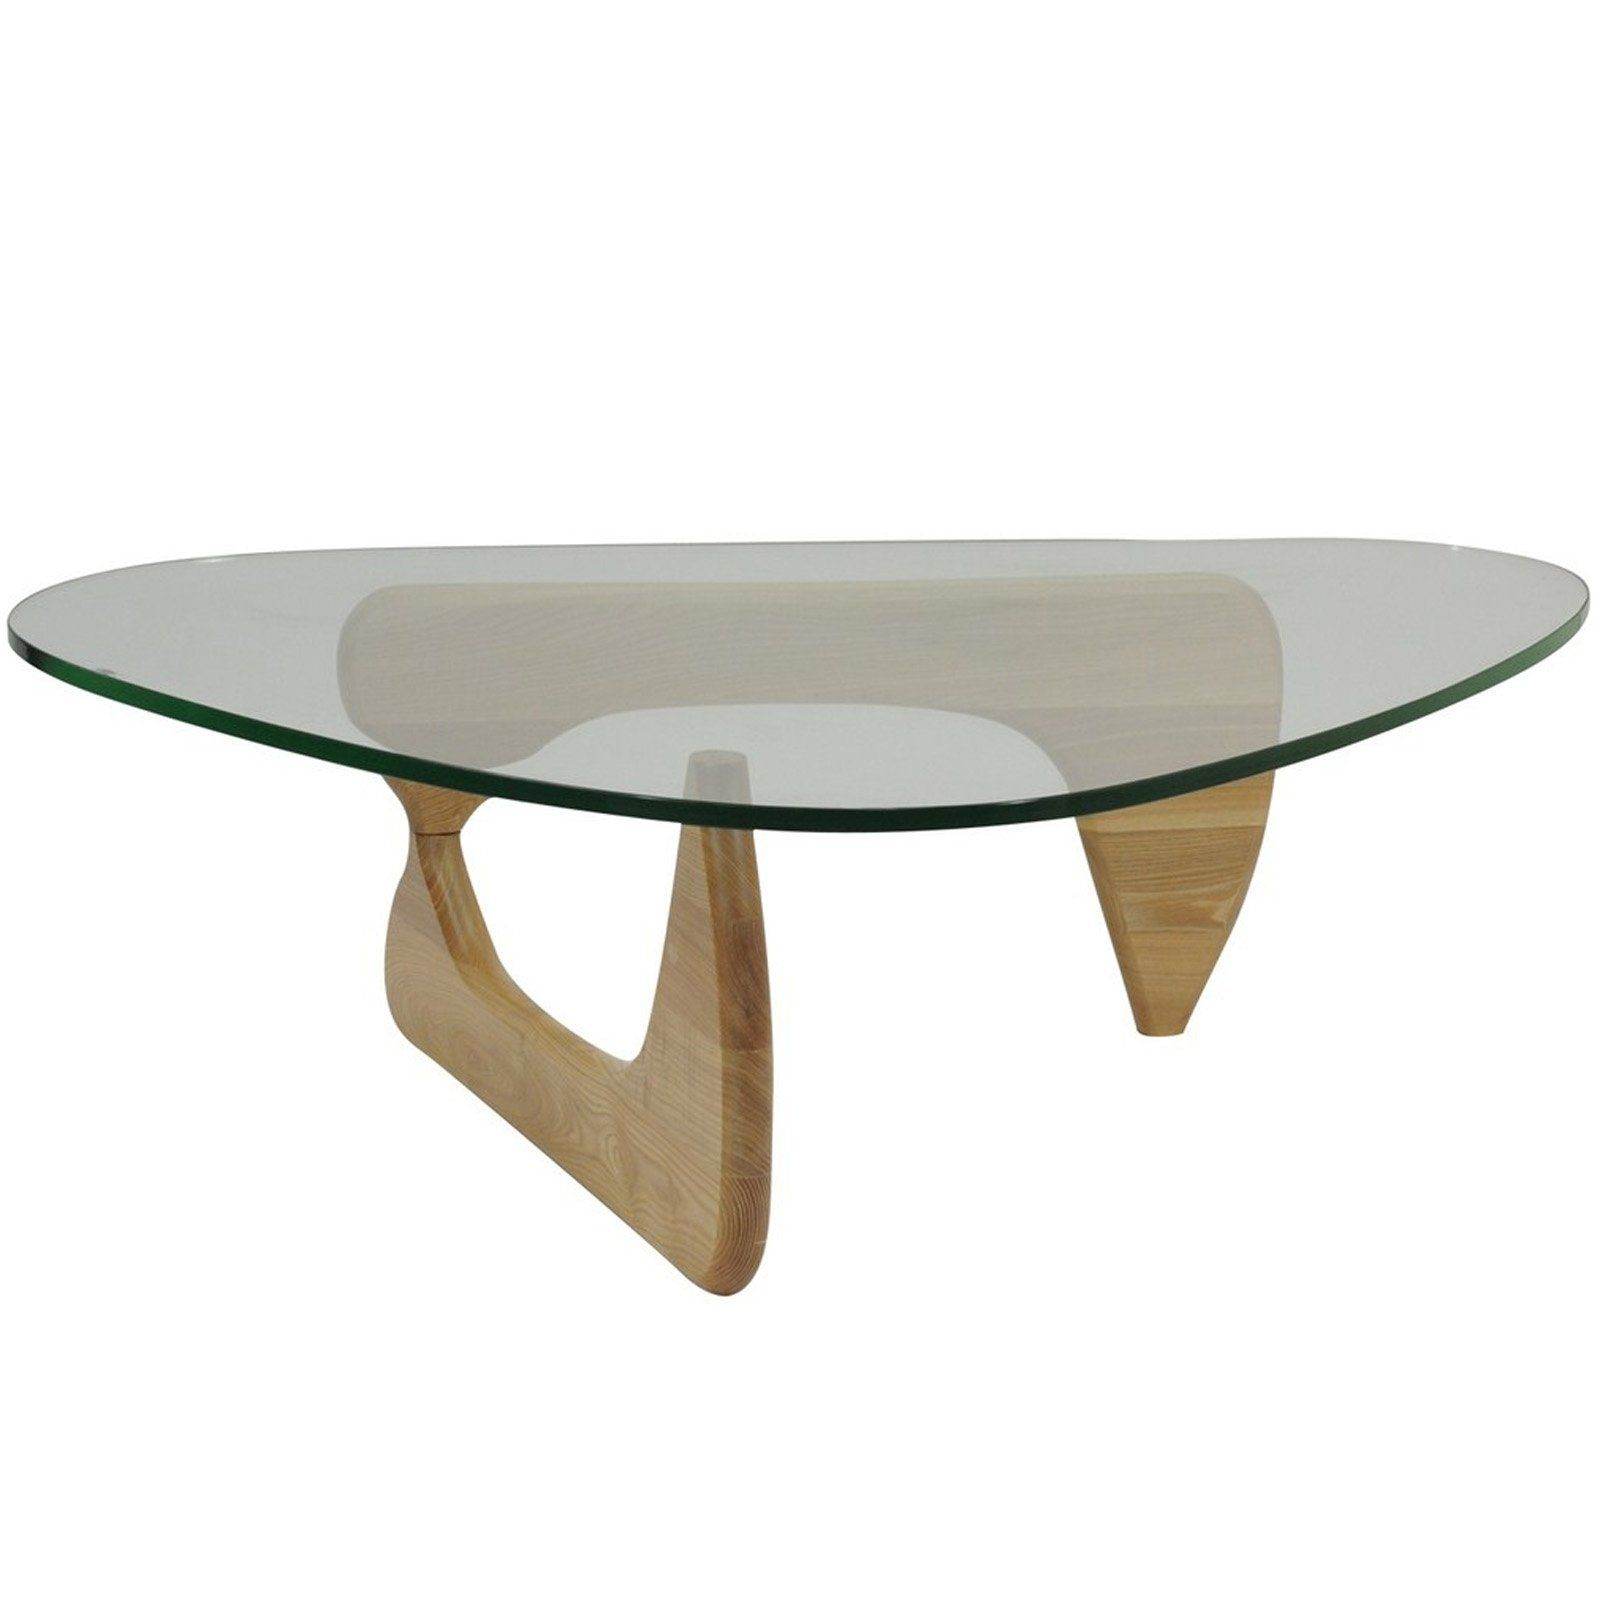 Have To Have It East End Imports Triangle Natural Wood Glass Top Coffee Table 416 99 Coffee Table Round Coffee Table Modern Triangle Coffee Table [ 1600 x 1600 Pixel ]